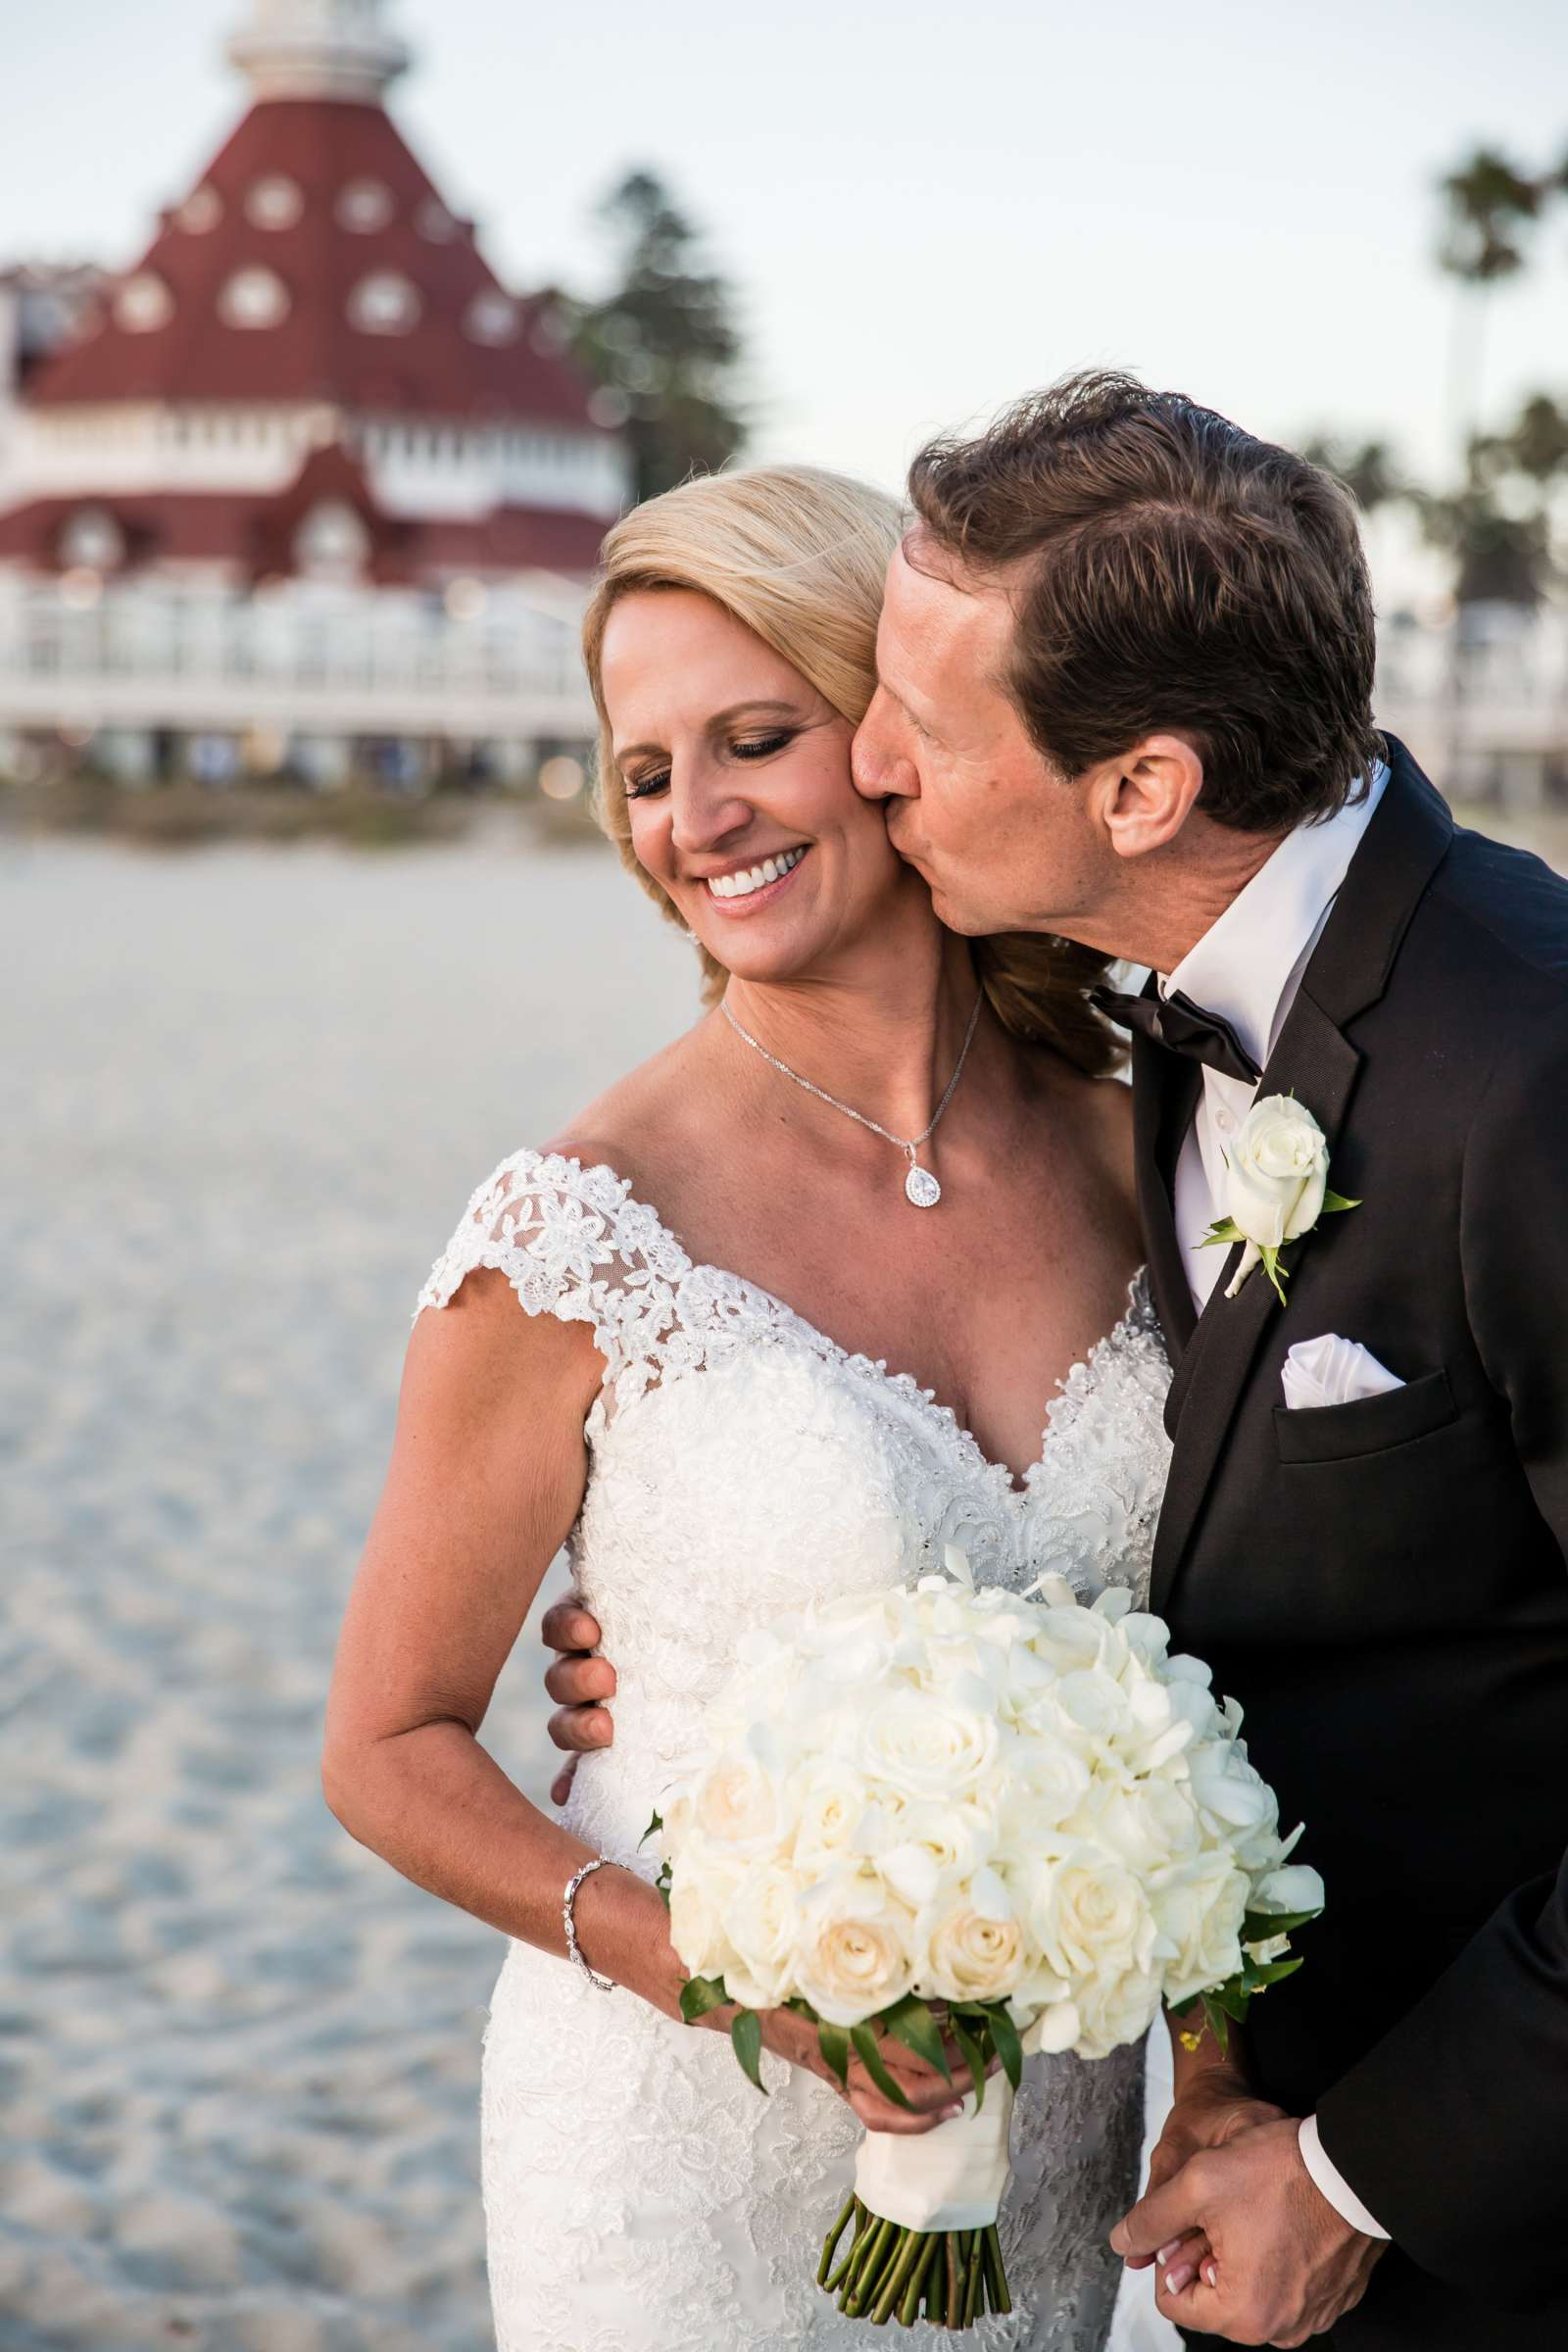 Hotel Del Coronado Wedding coordinated by Creative Affairs Inc, Diane and Paul Wedding Photo #24 by True Photography